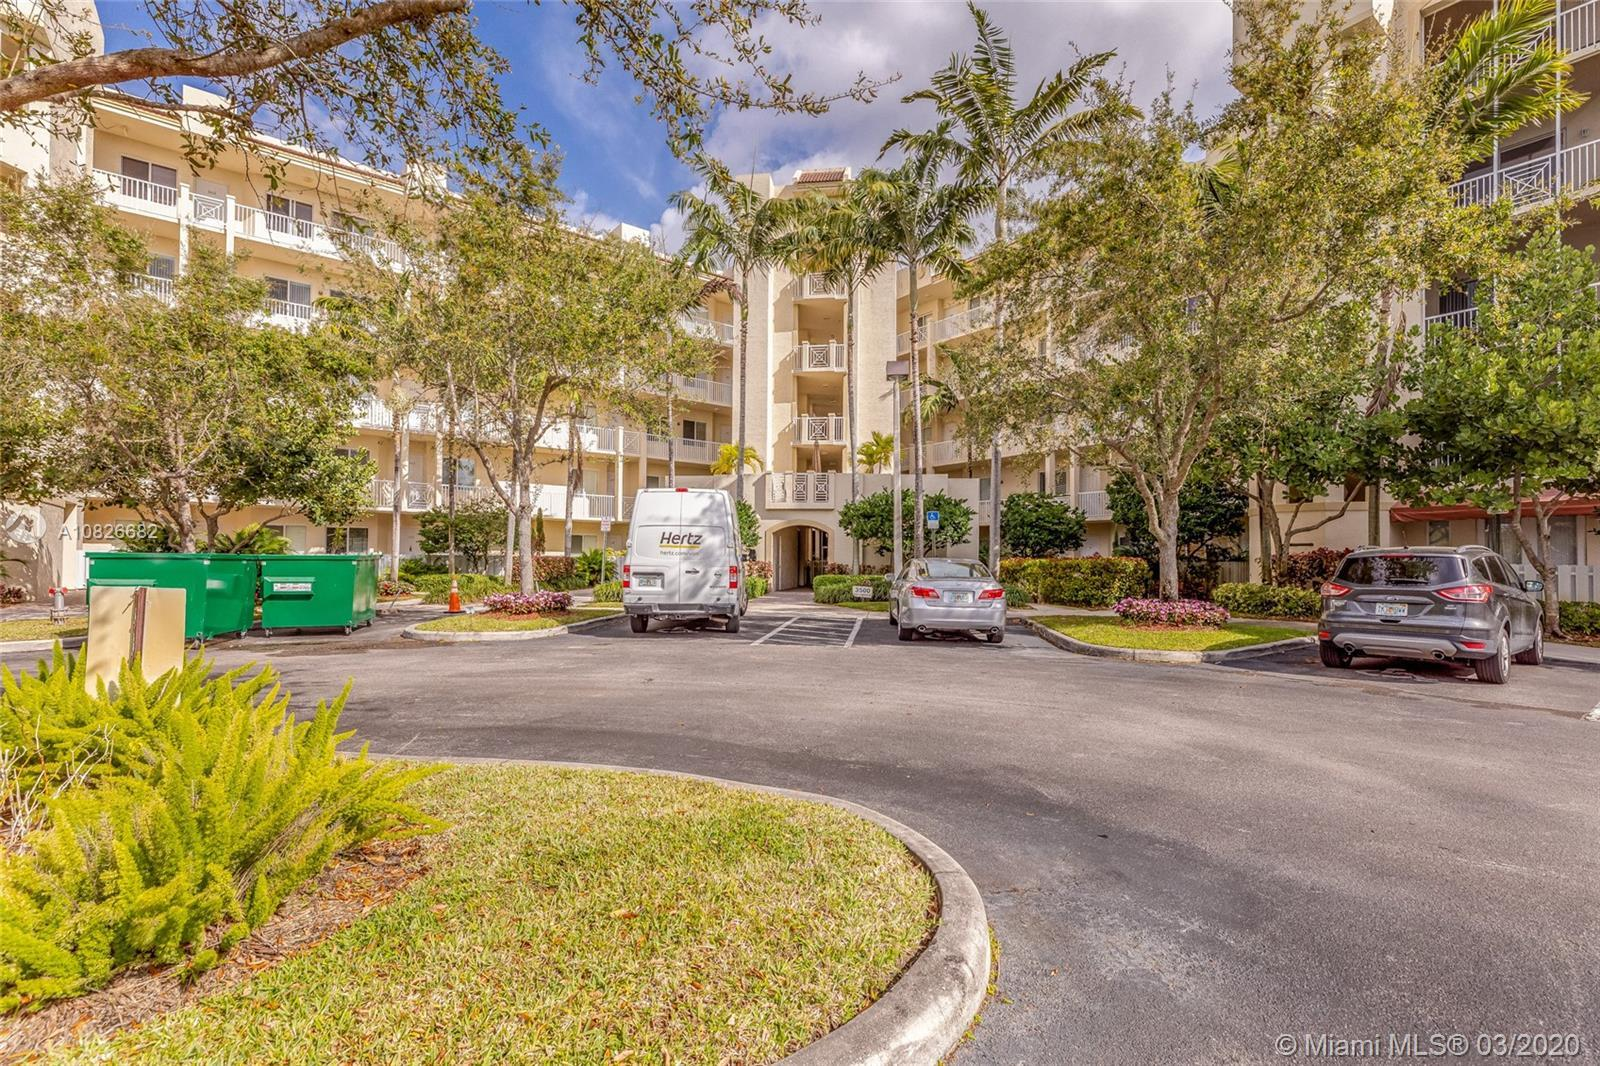 EXCELLENT OPPORTUNITY FOR INVESTOR, YOU CANT RENT 1ST YEAR OWNED. BEAUTIFUL UNIT 3 BEDROOMS ANS 2 BA